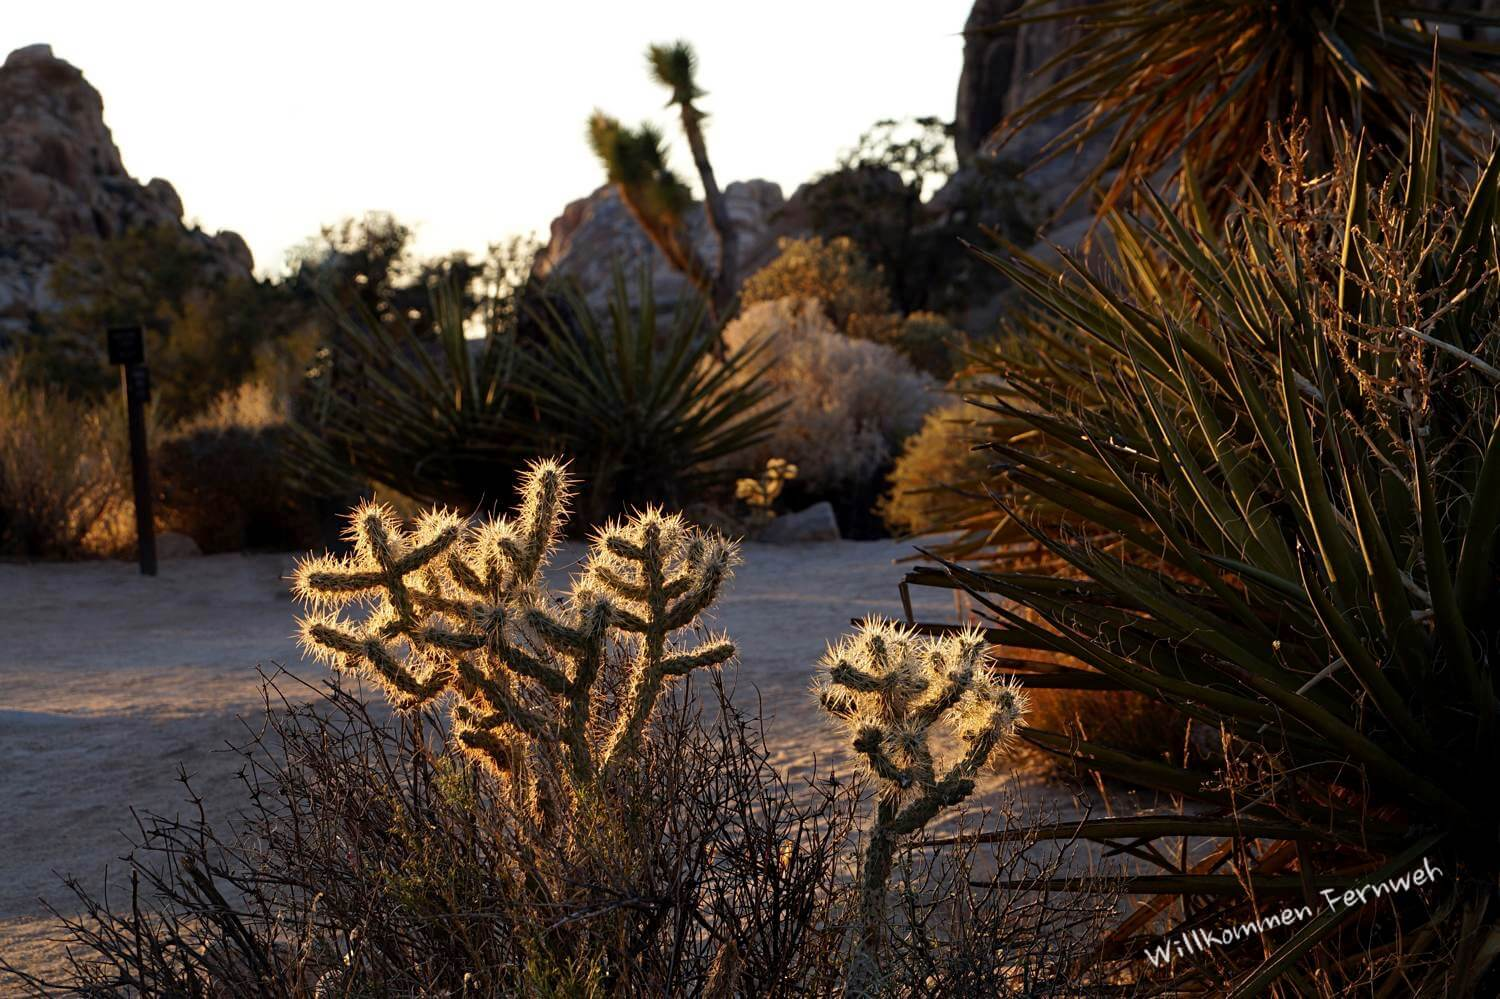 Cholla Cactus im abendlichen Hidden Valley, Joshua Tree National Park